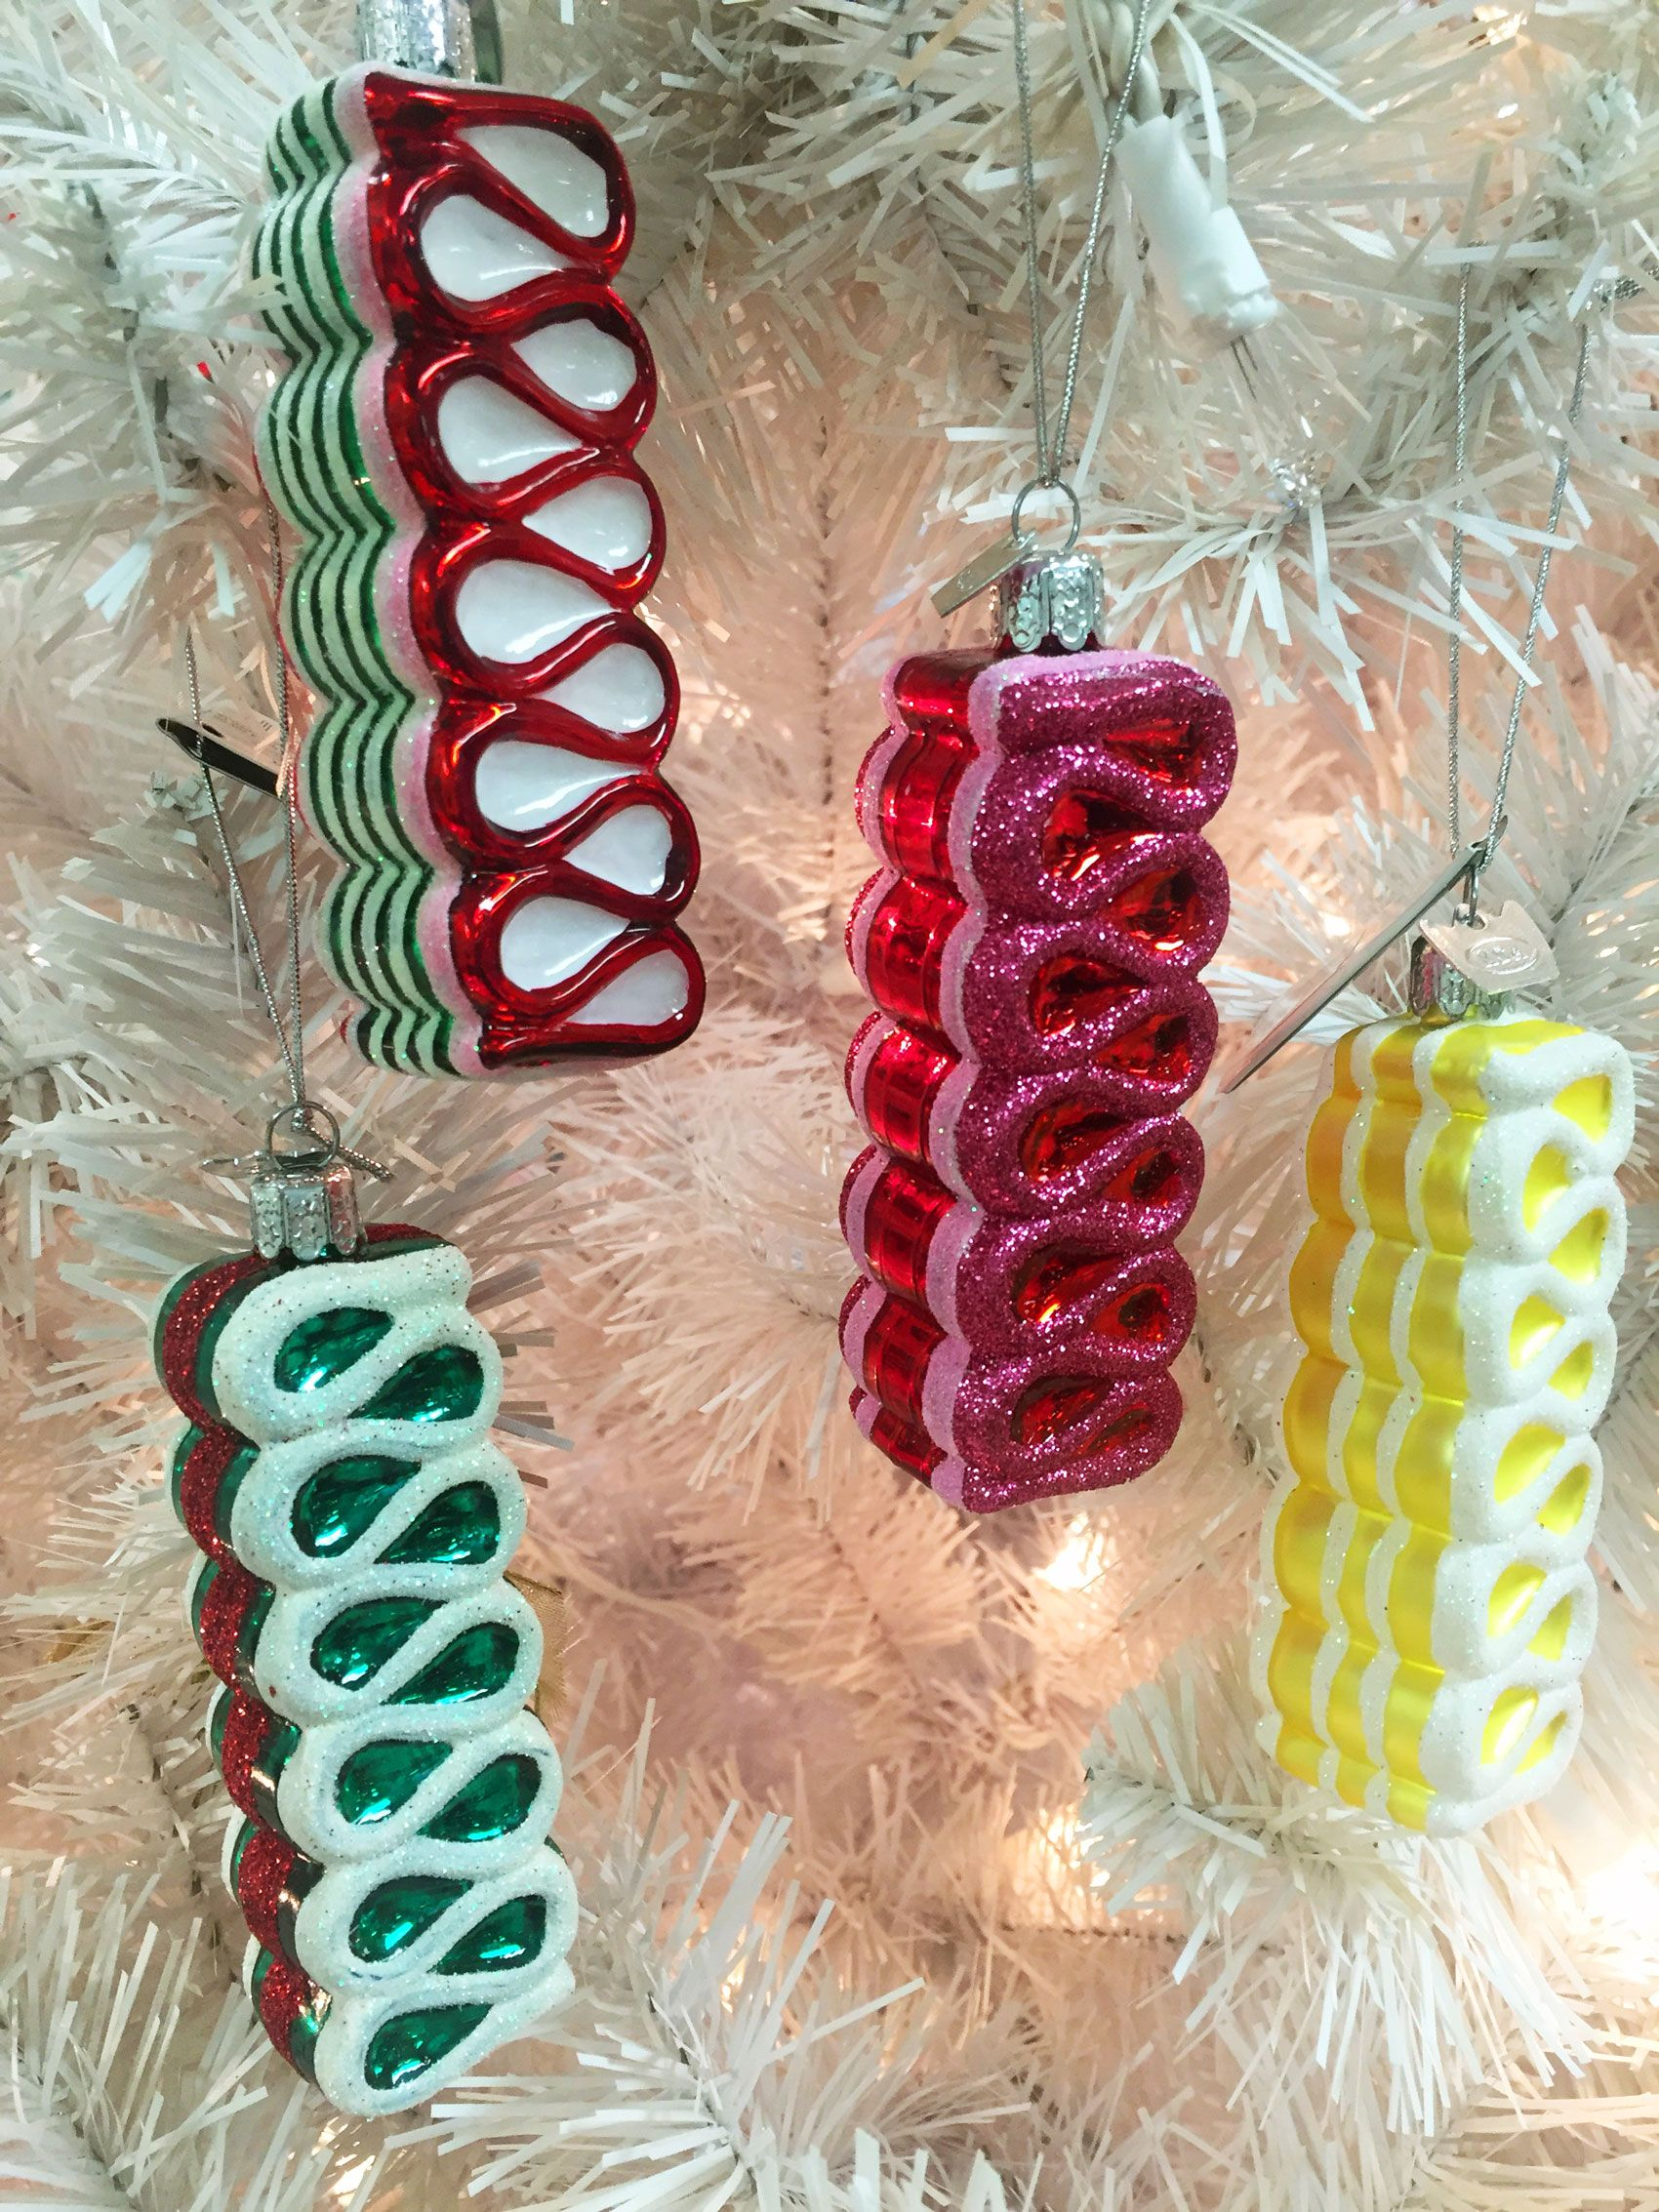 Sets Of Ribbon Candy Ornaments In Green, Red, White, Yellow